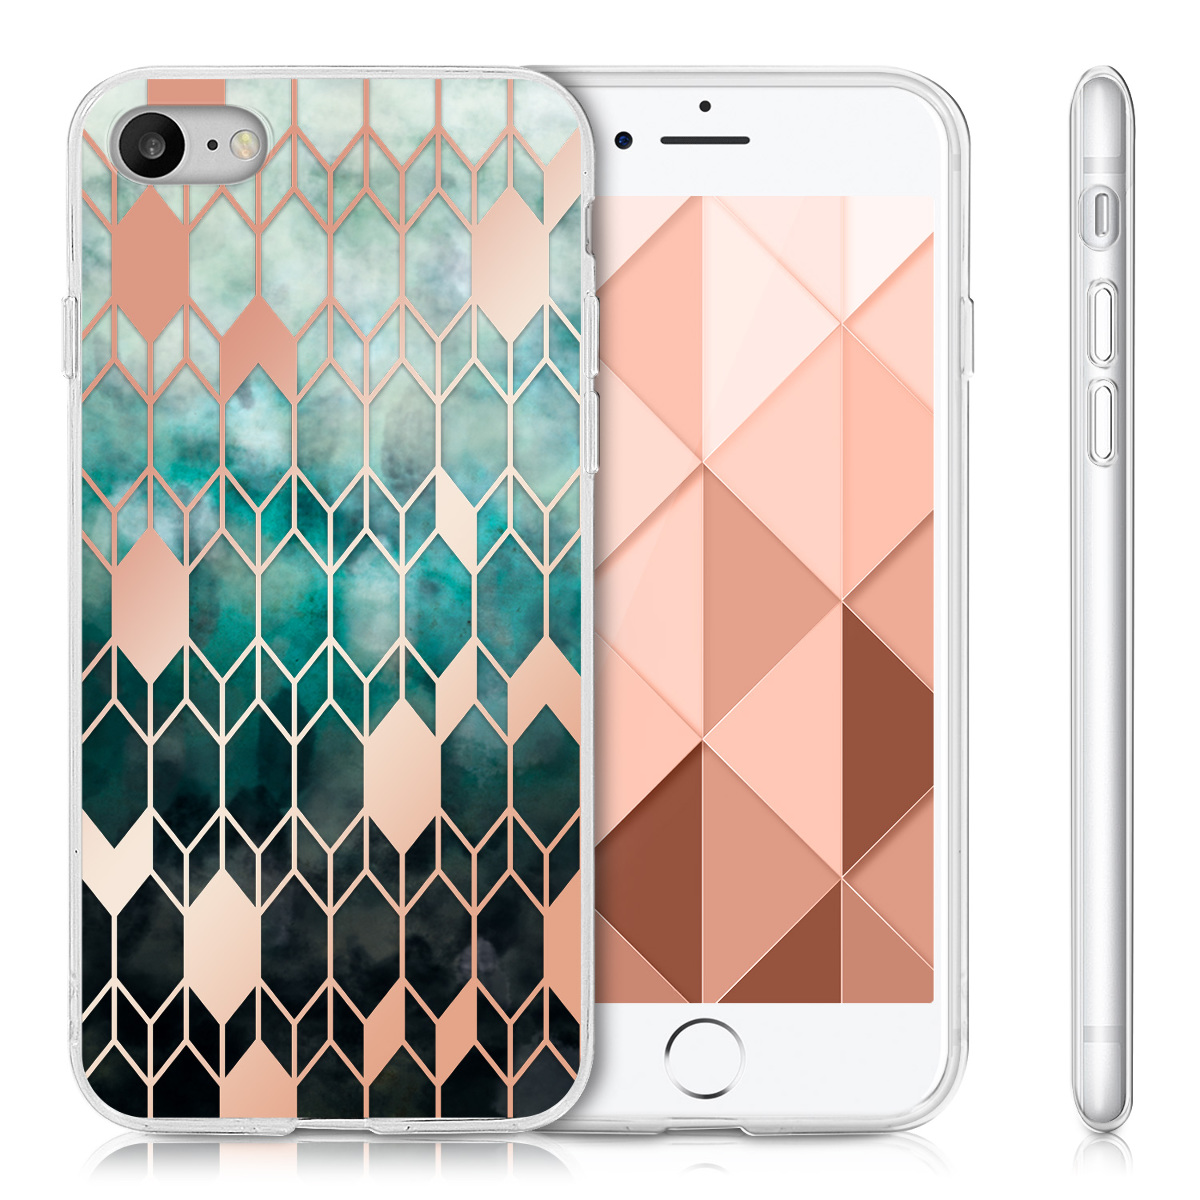 kwmobile-COQUE-POUR-APPLE-IPHONE-7-8-HOUSSE-HOUSSE-SILICONE-PROTECTION